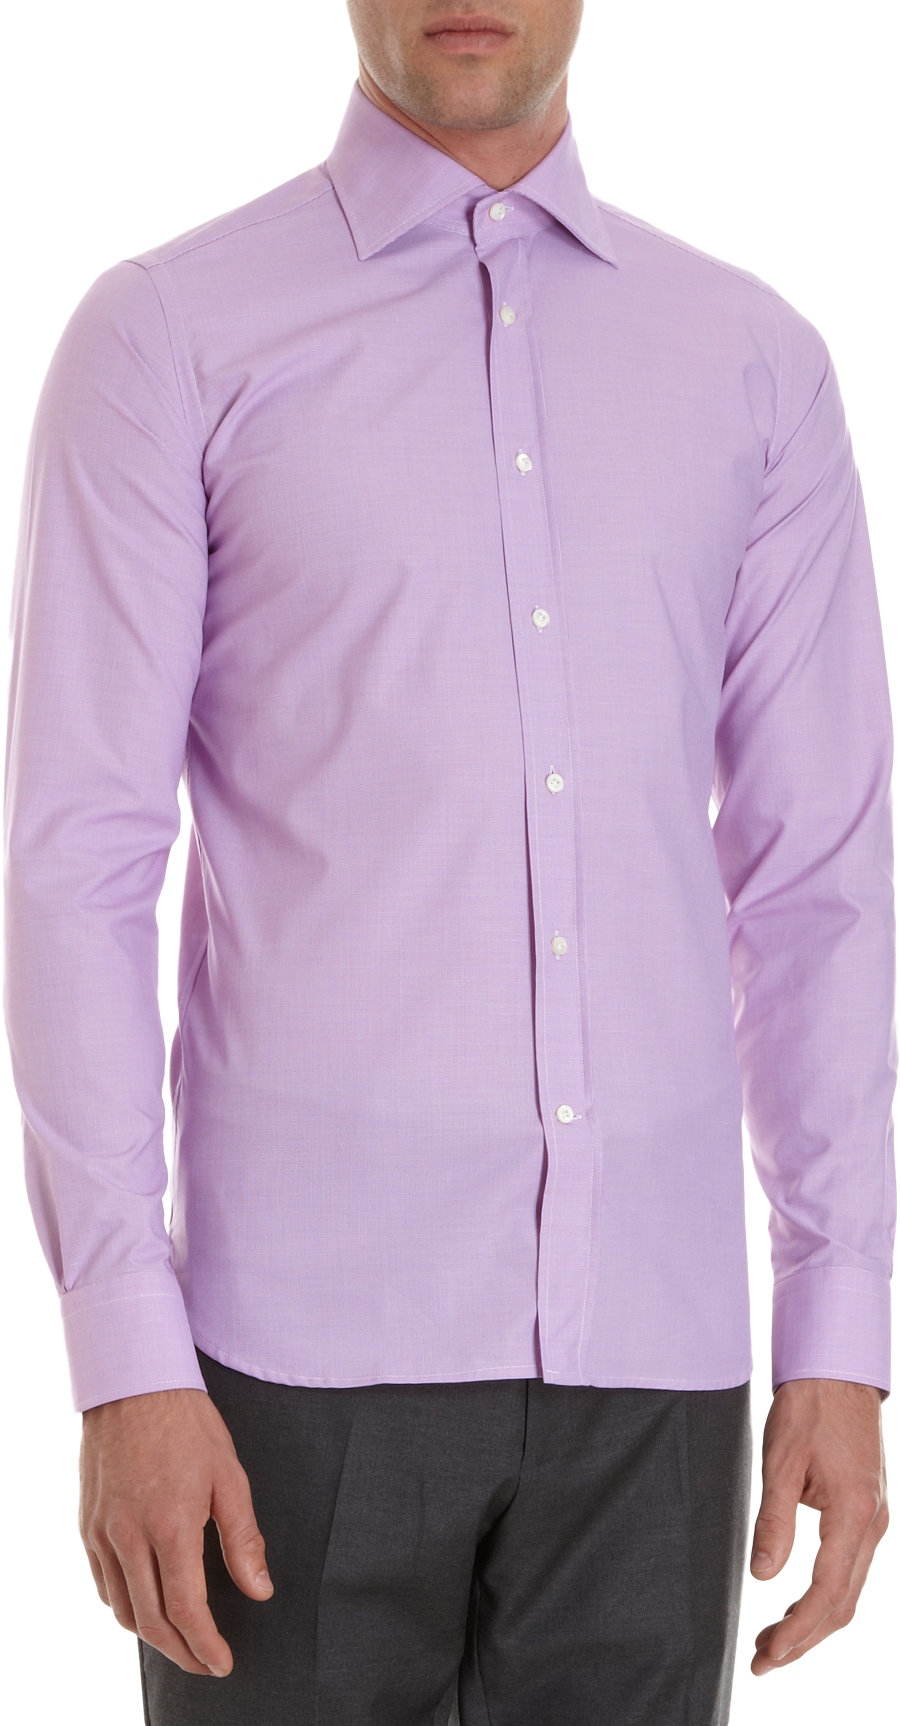 Guy rover Micro Check Dress Shirt in Purple for Men